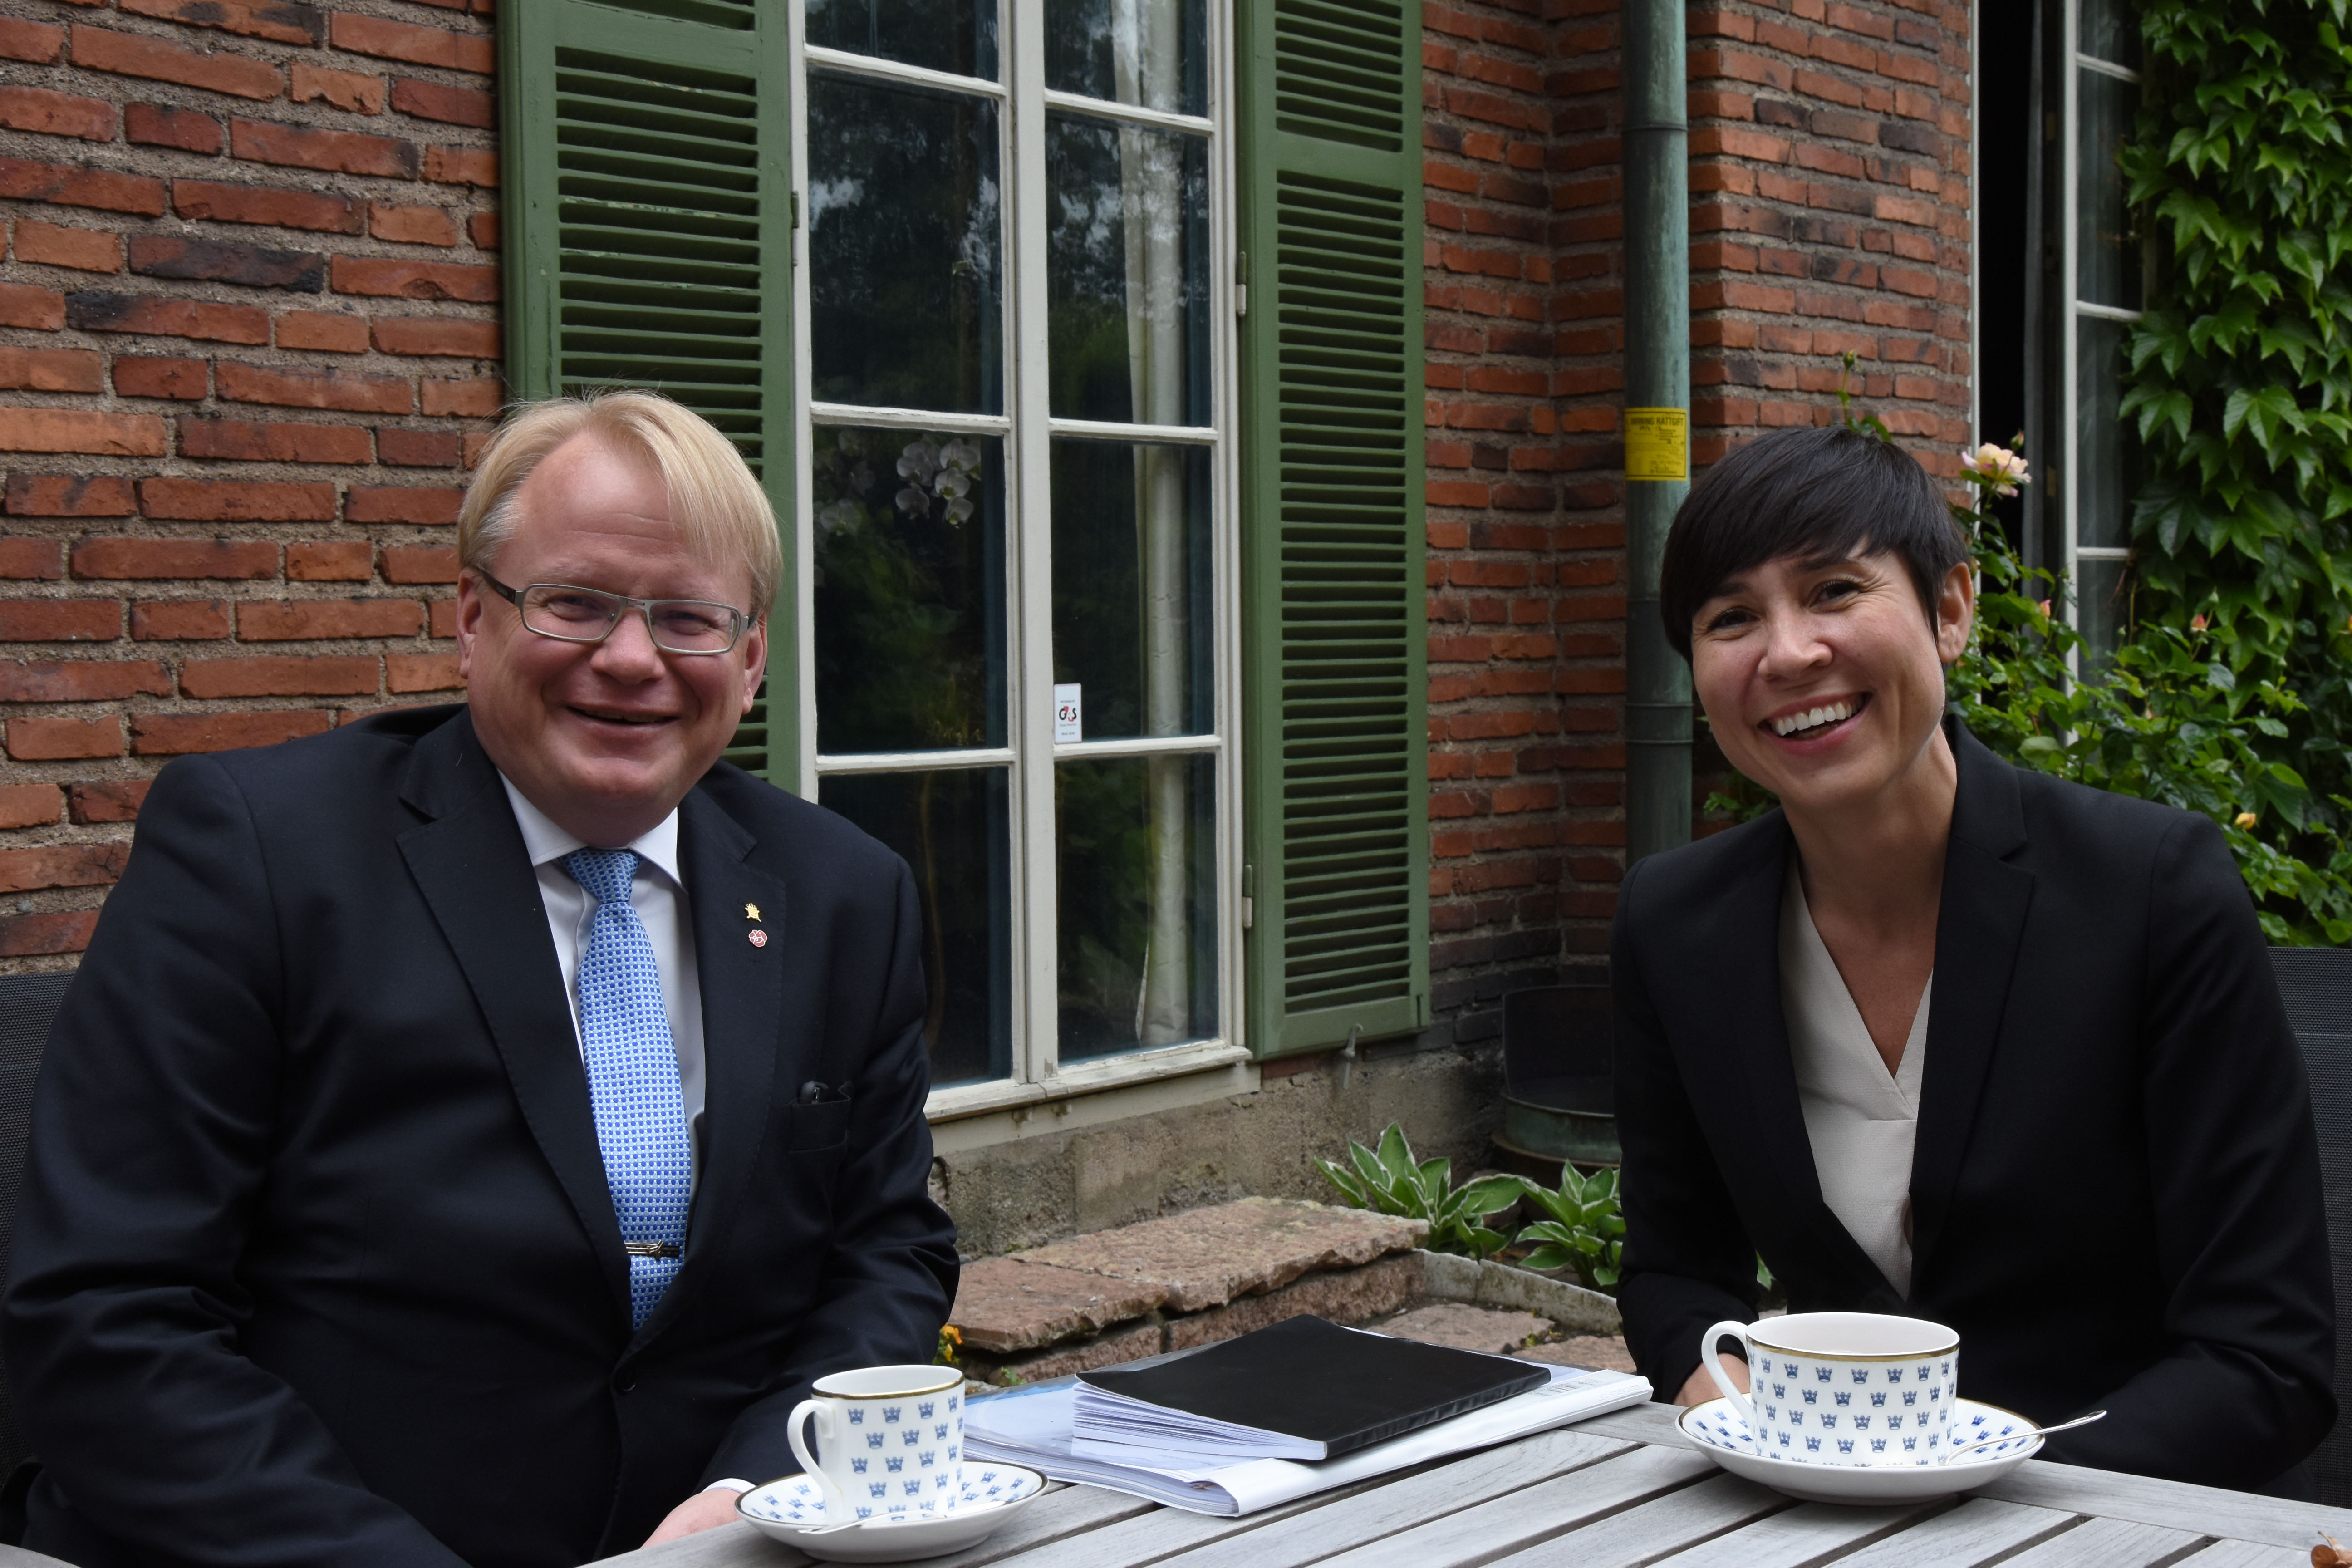 Minister for Defence Peter Hultqvist together with his Norwegian colleague, Minister of Defence Ine Eriksen Søreide.